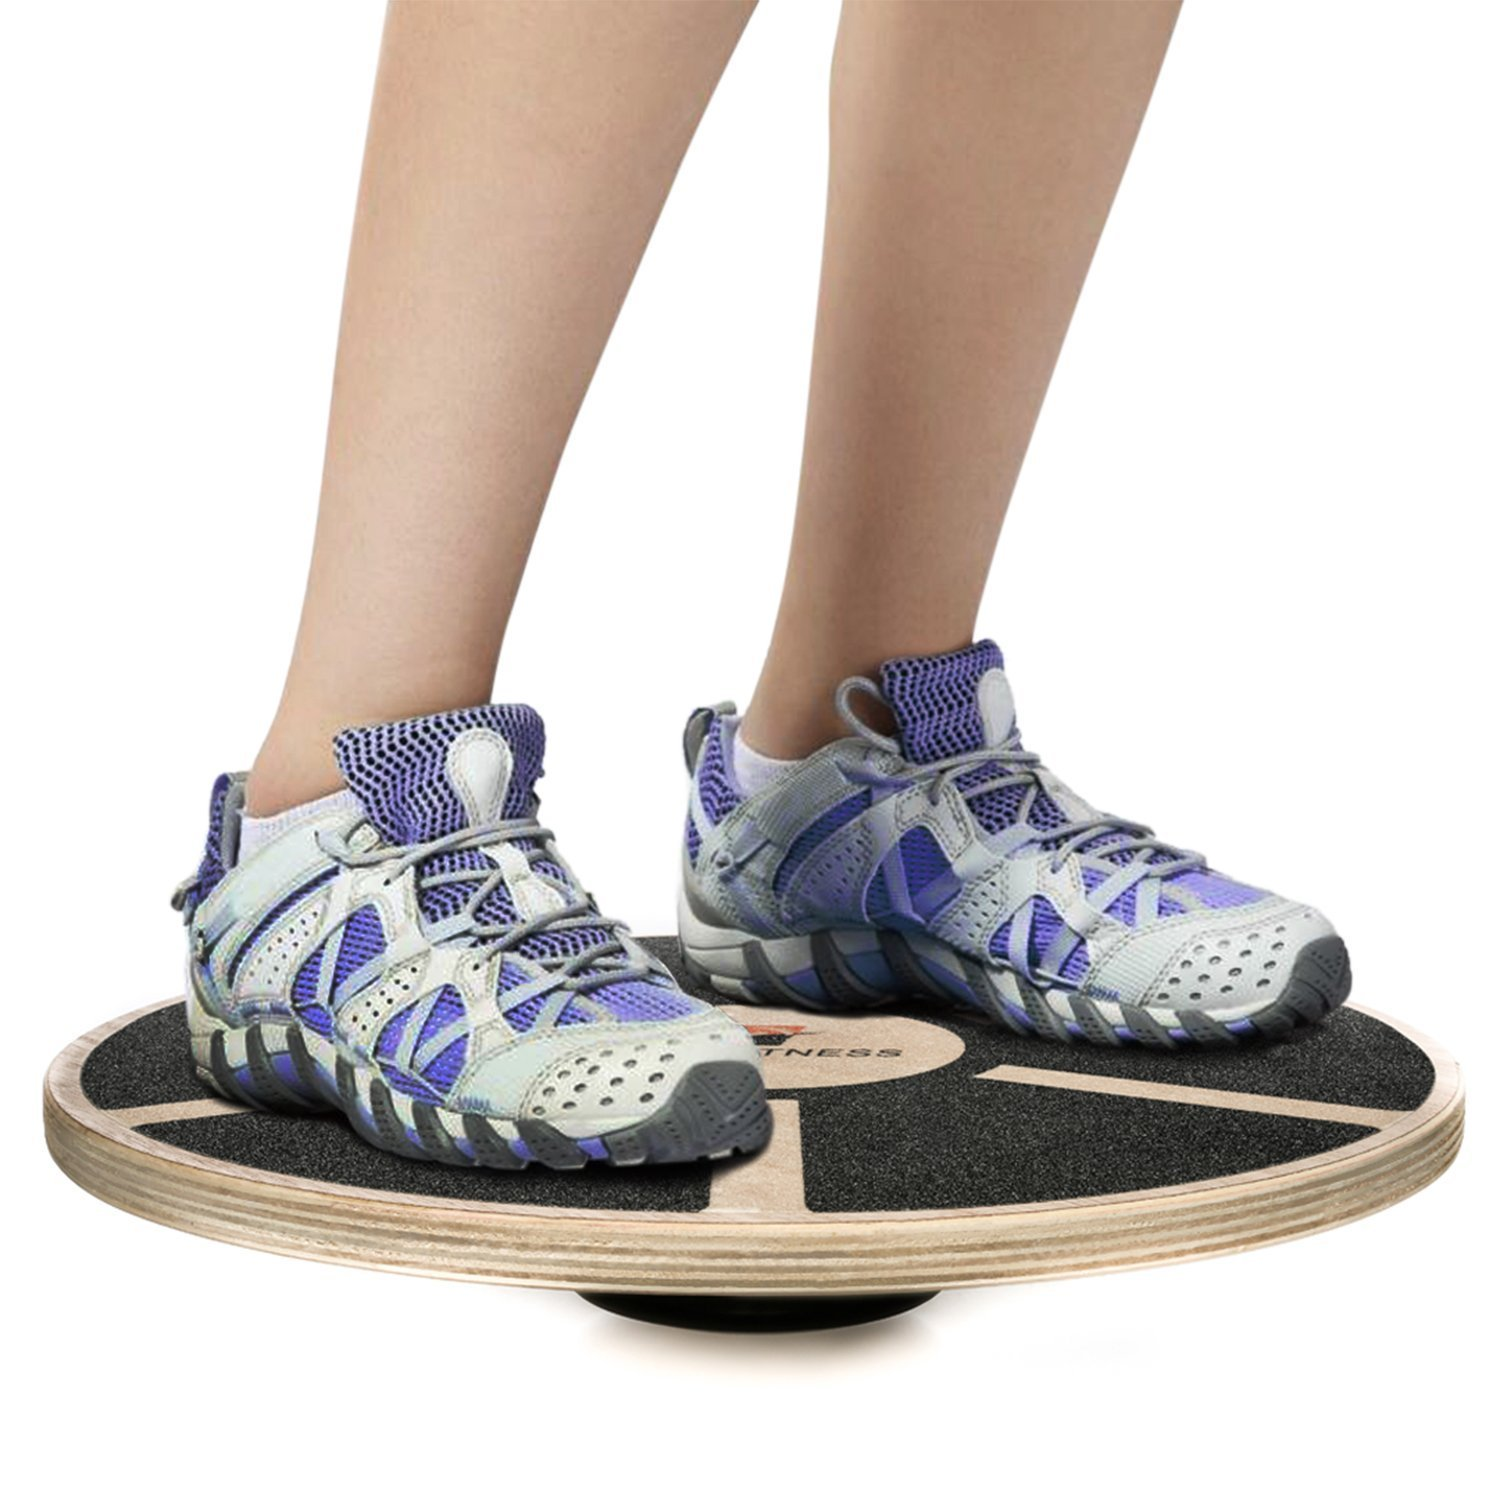 Balance exercise physical therapy - Prof Itness Wooden Balance Board Exercise Fitness And Physical Therapy Non Slip Safety Top Tone Muscles Strengthen Core And Injury Rehab